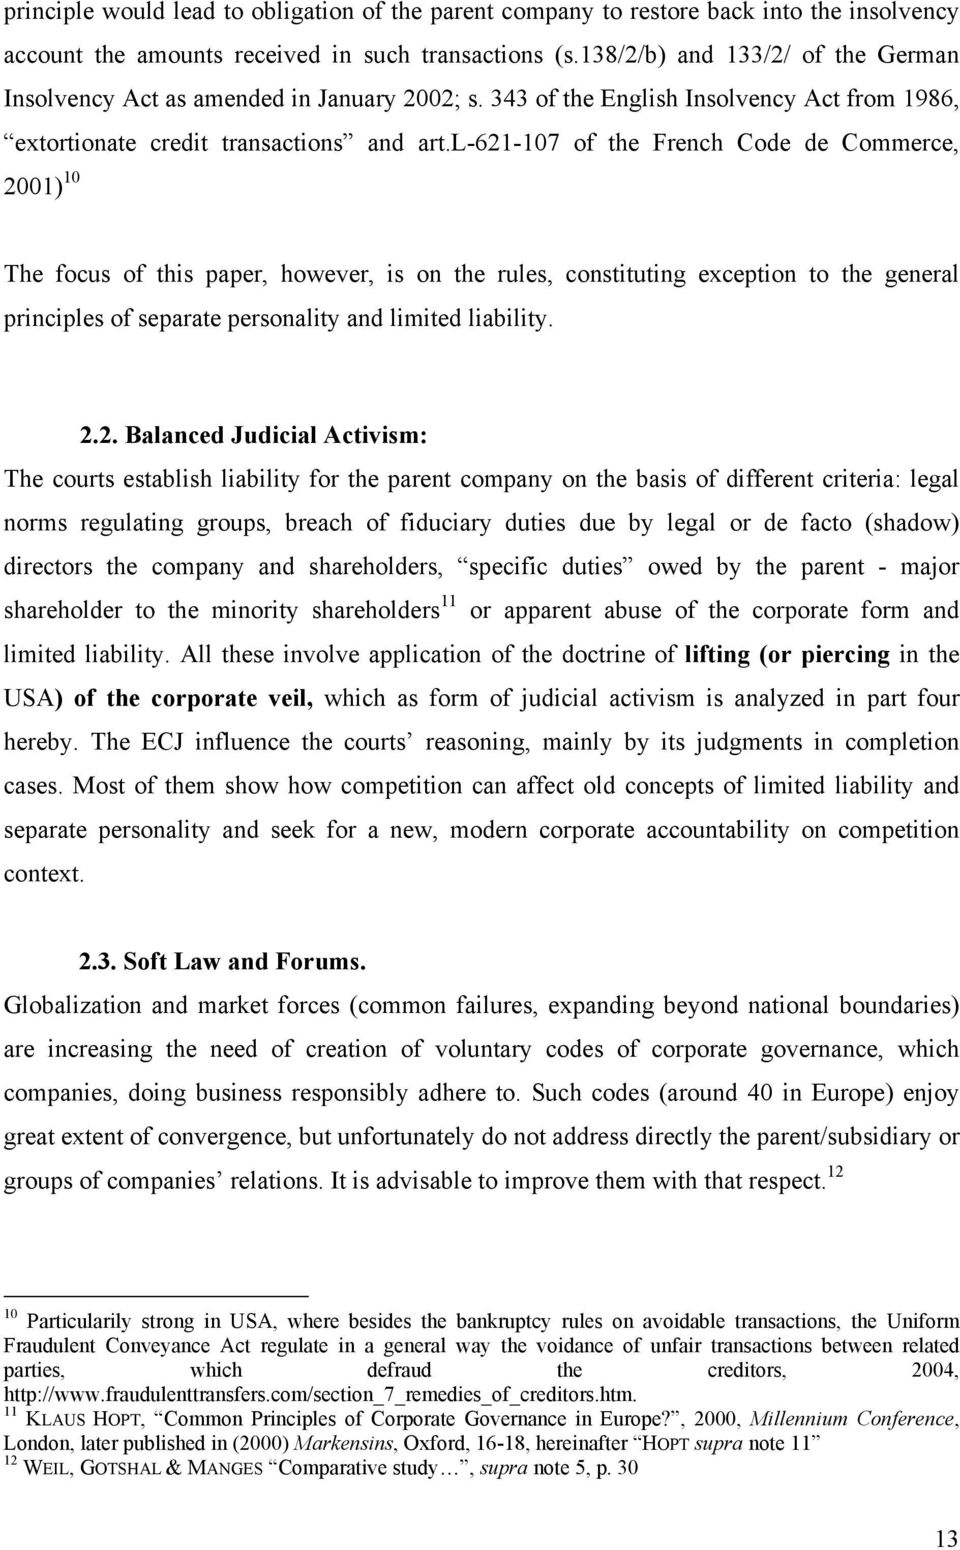 l-621-107 of the French Code de Commerce, 2001) 10 The focus of this paper, however, is on the rules, constituting exception to the general principles of separate personality and limited liability.